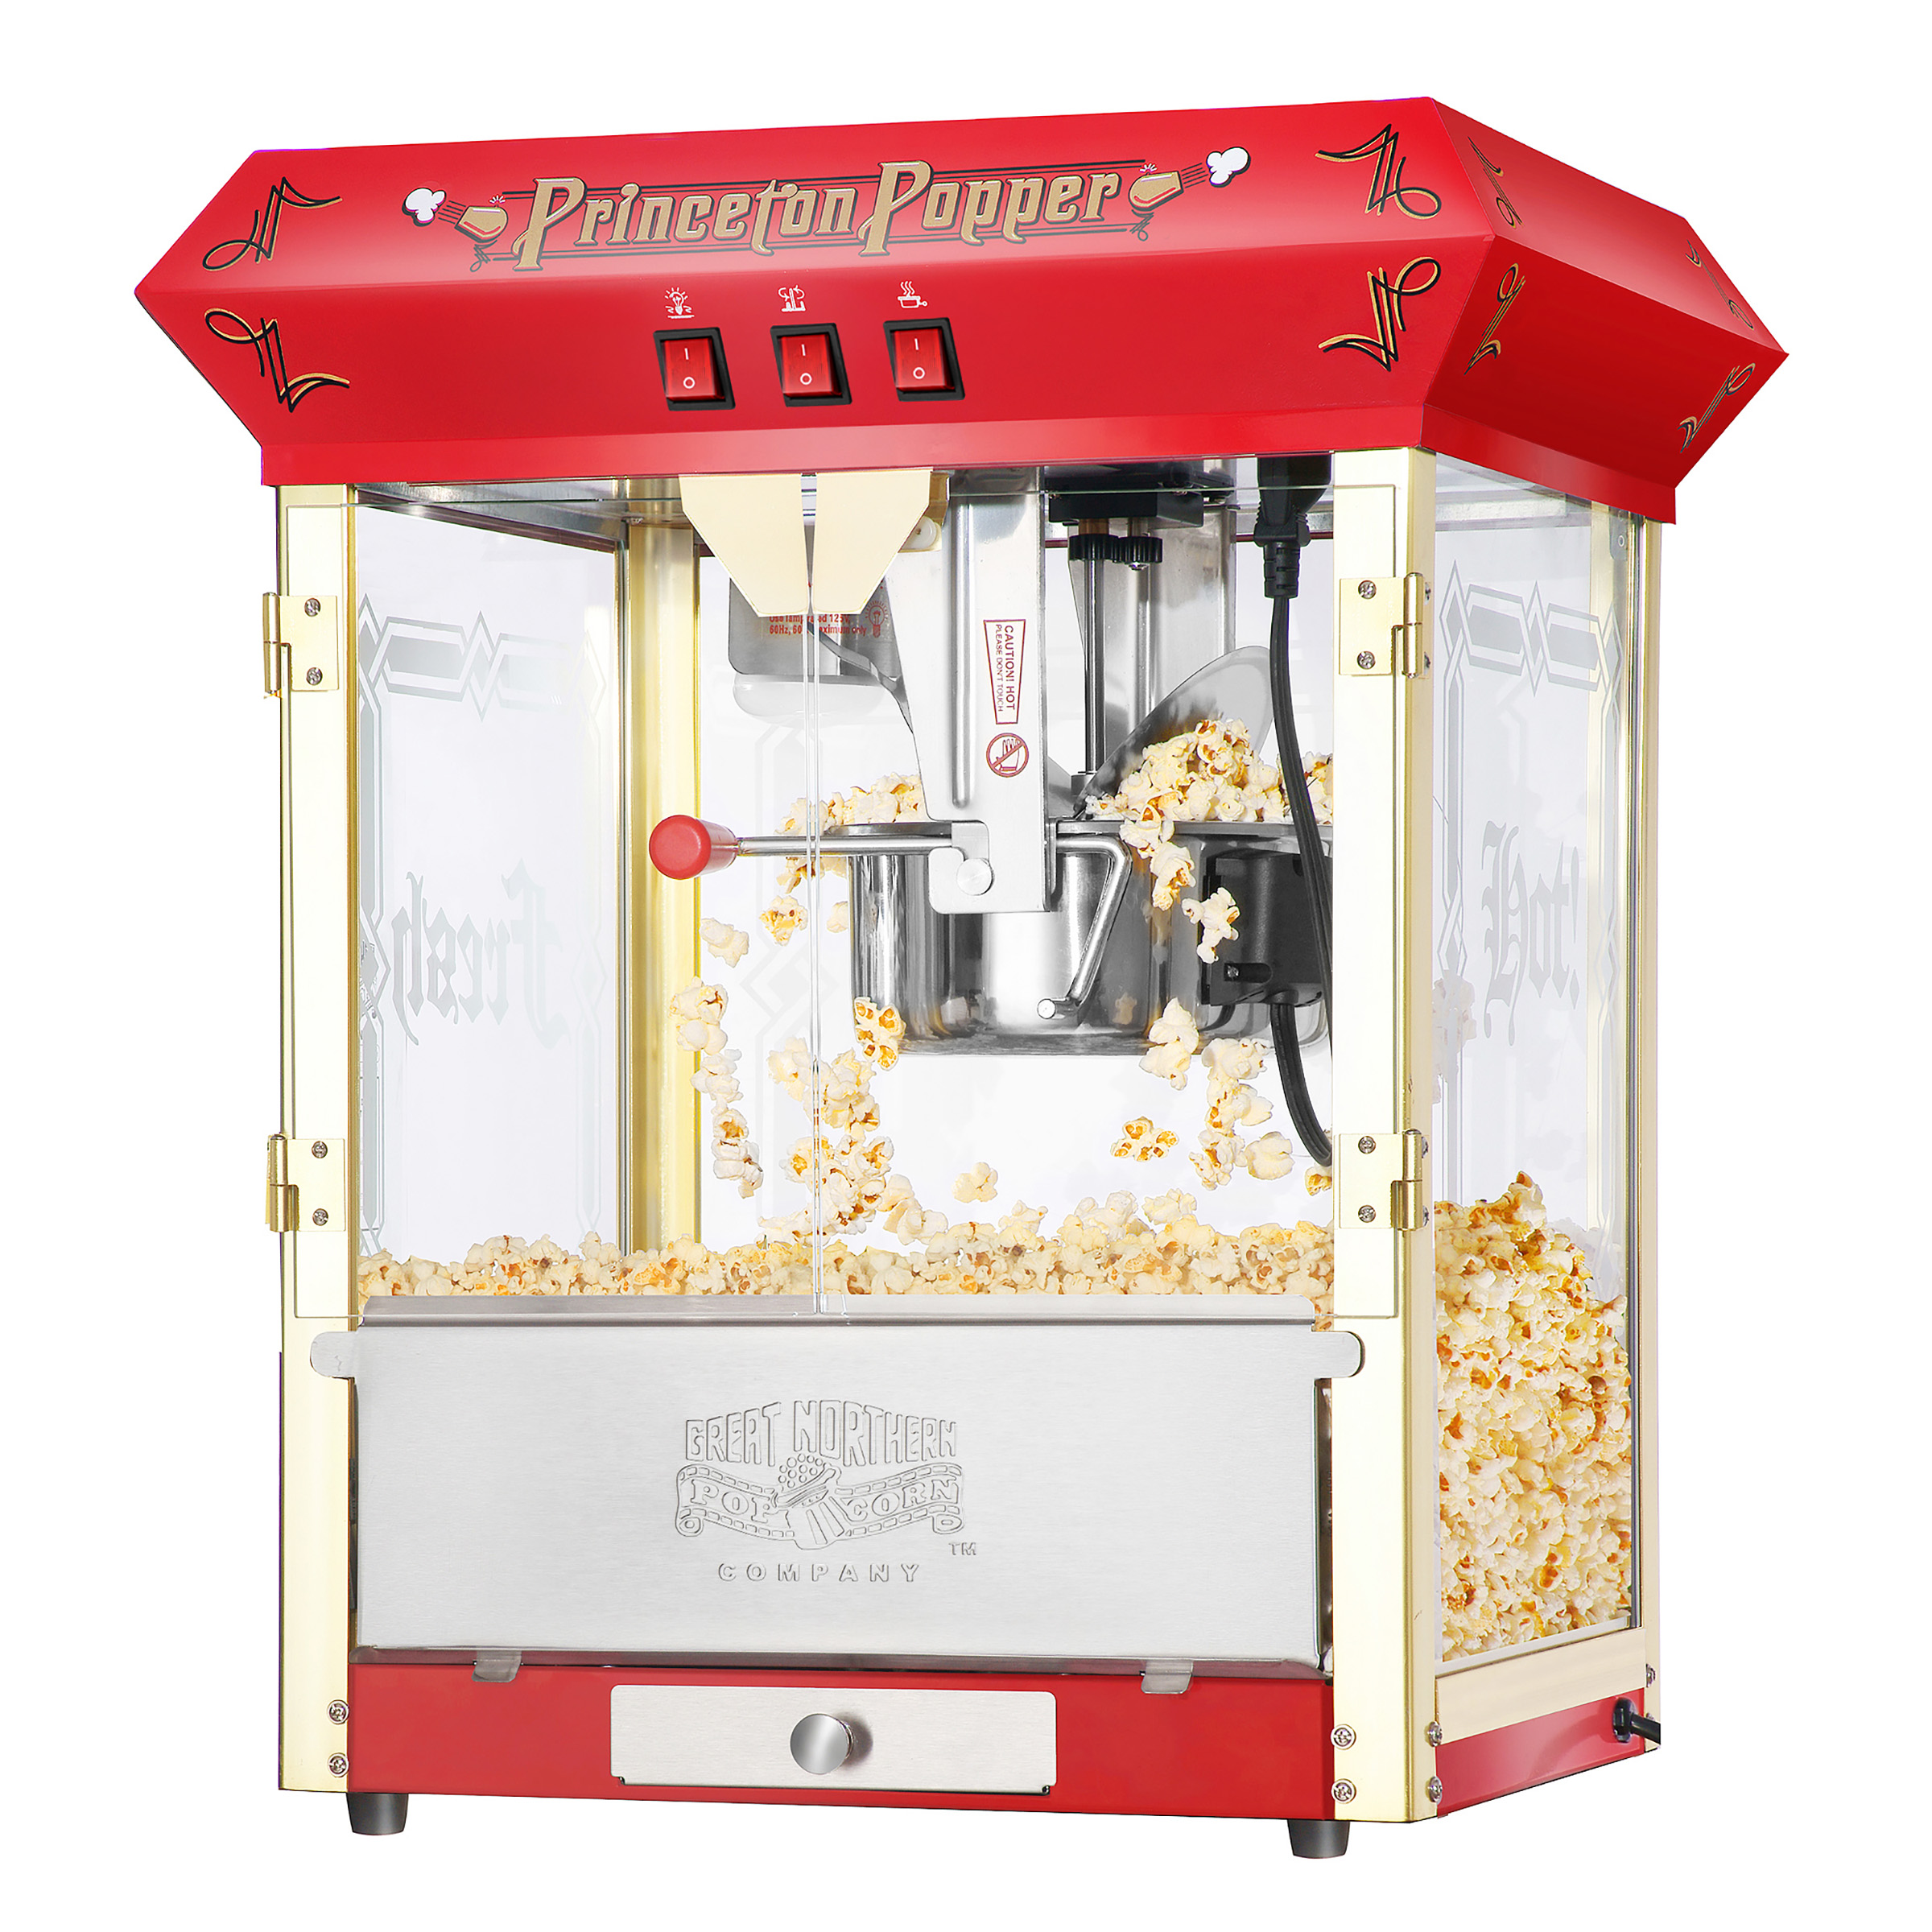 Princeton Red Antique Style Popcorn Popper Machine, 8 oz by Great Northern Popcorn